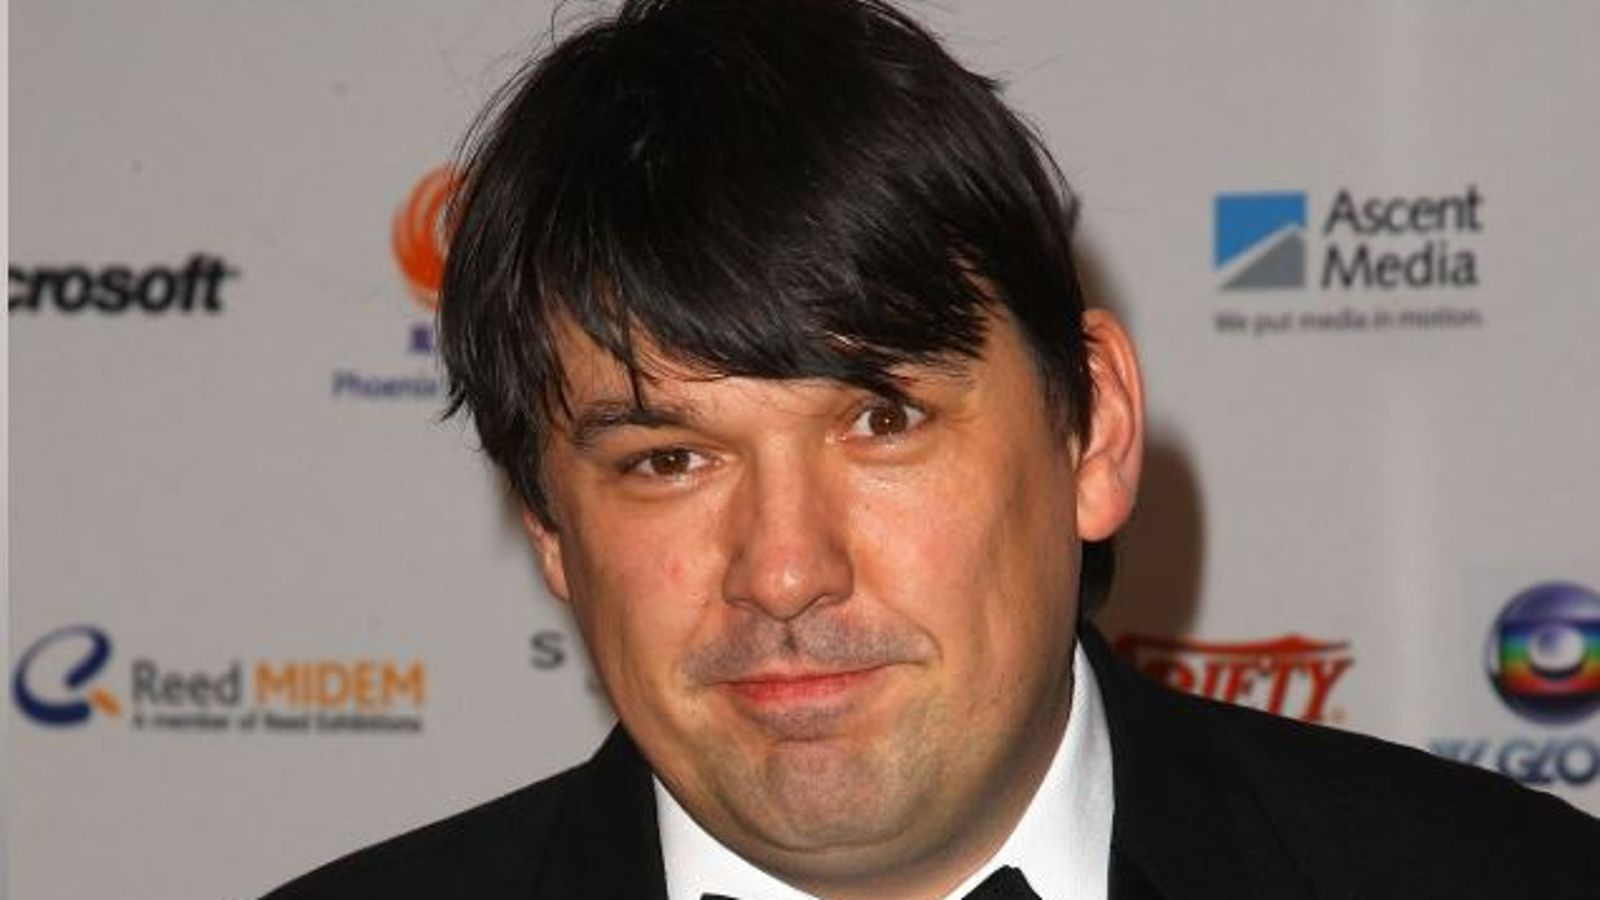 news.sky.com: Father Ted co-creator Graham Linehan banned from Twitter after trans comment